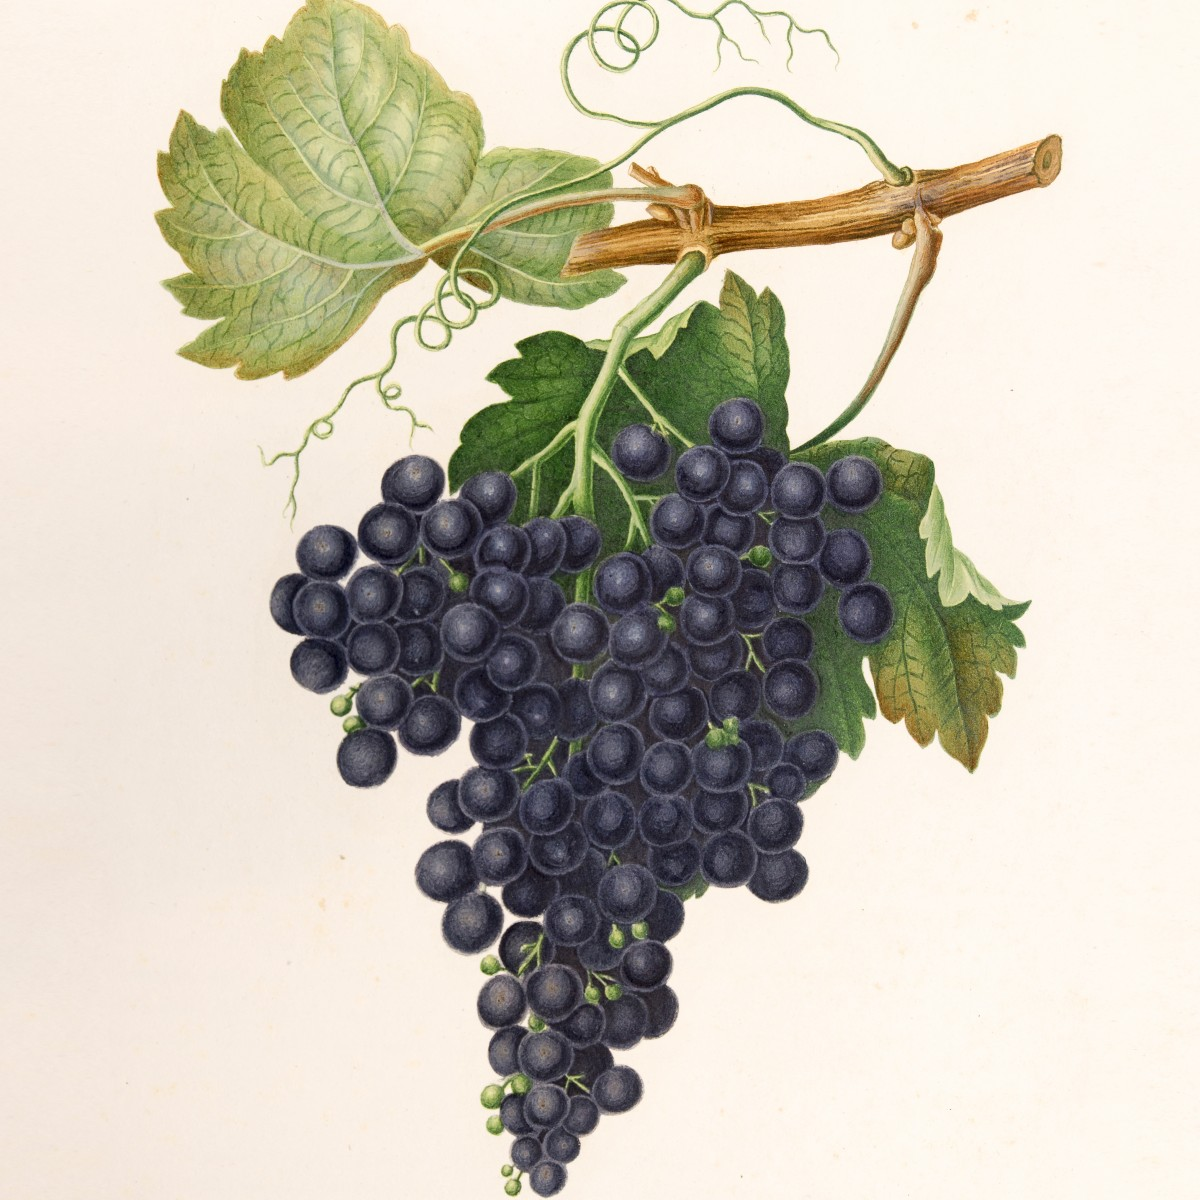 Ampelography: I heard it through the grapevine